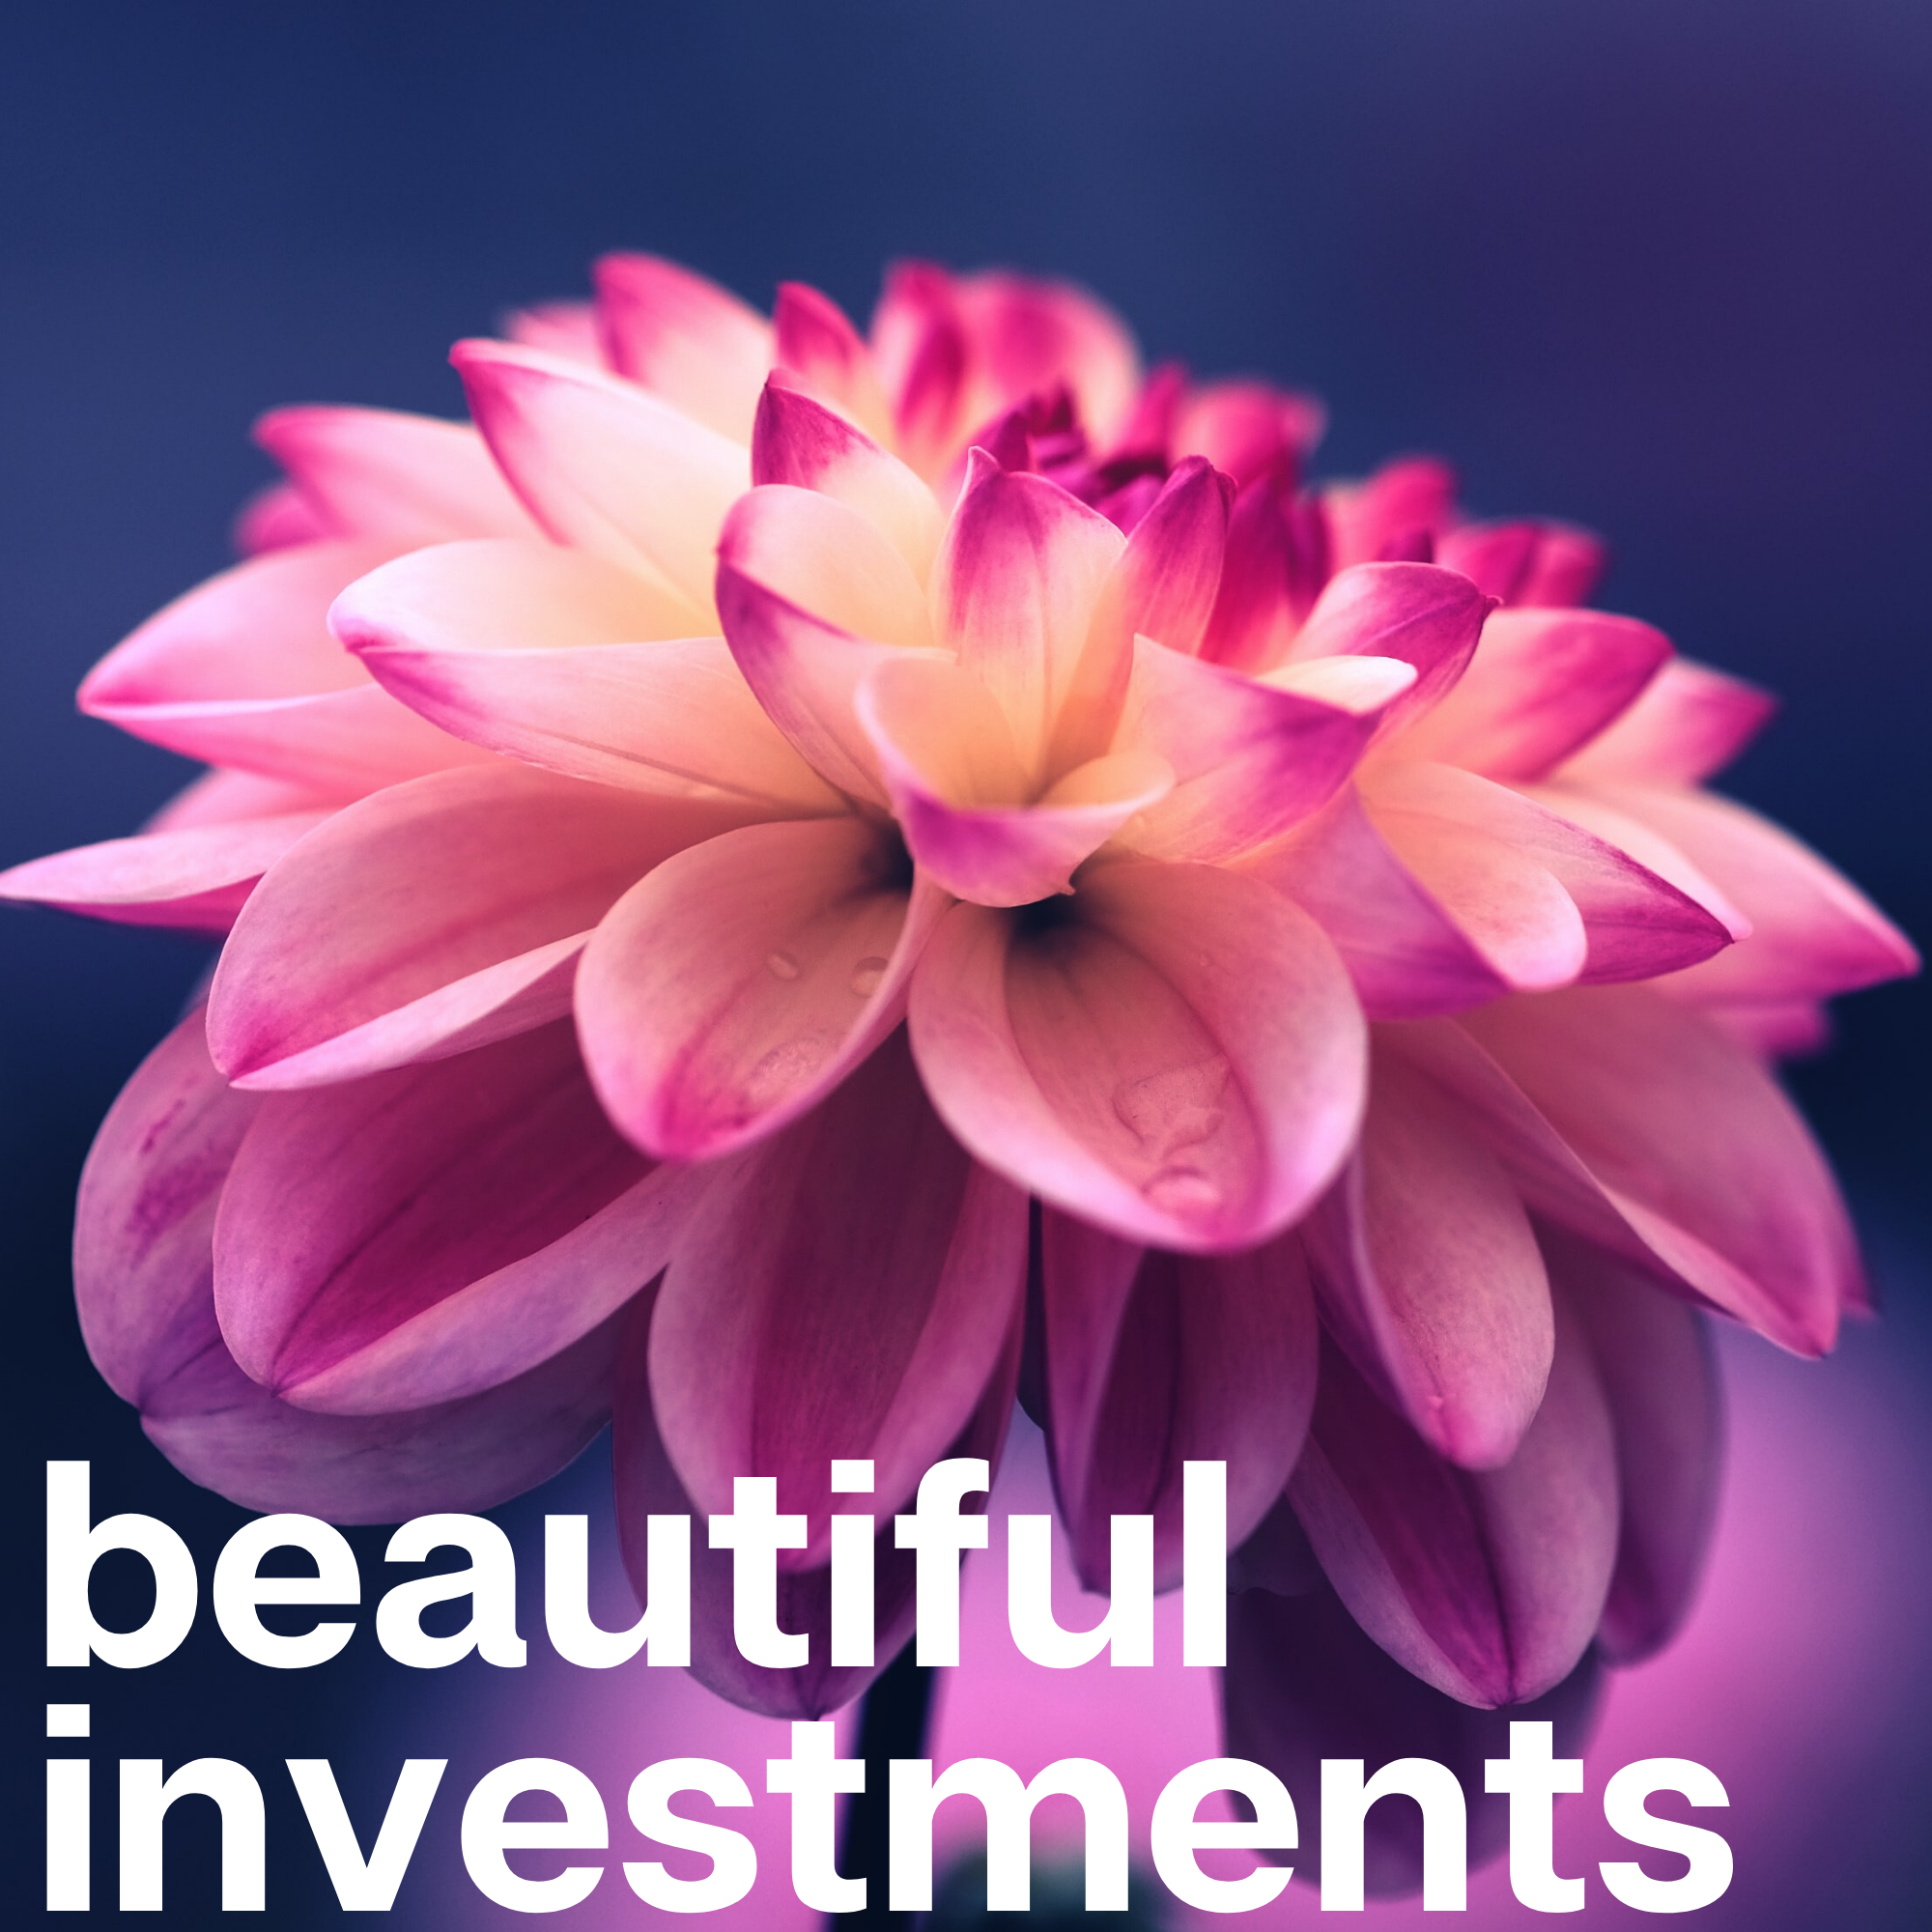 What if every investment was beautiful?